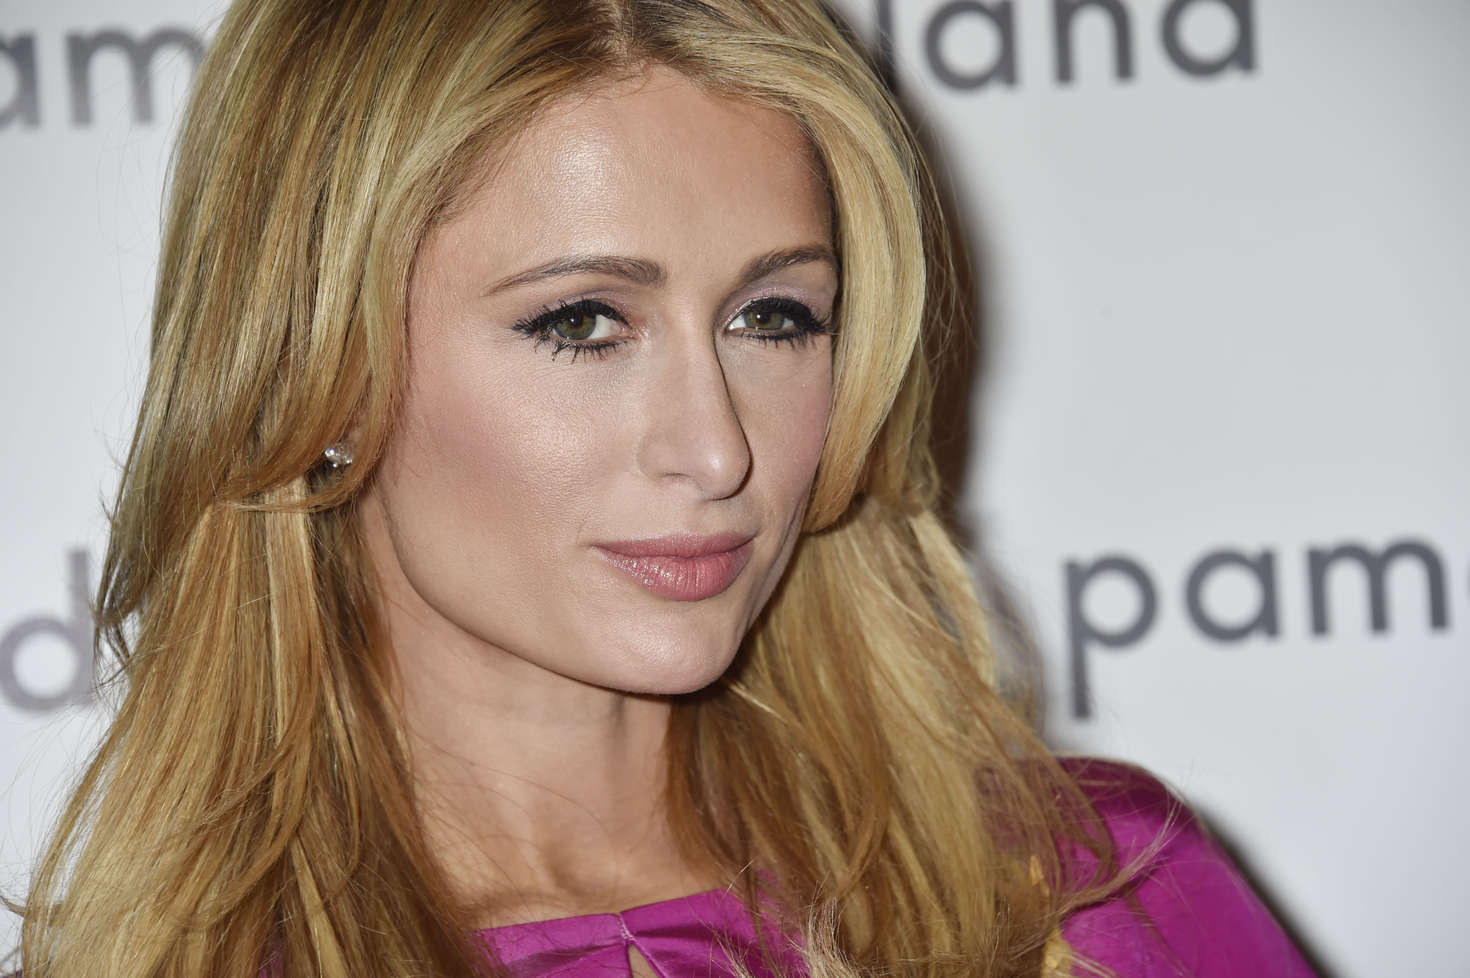 Paris Hilton: Pamella Roland Fall Fashion Show 2016 -06 - GotCeleb Paris Hilton